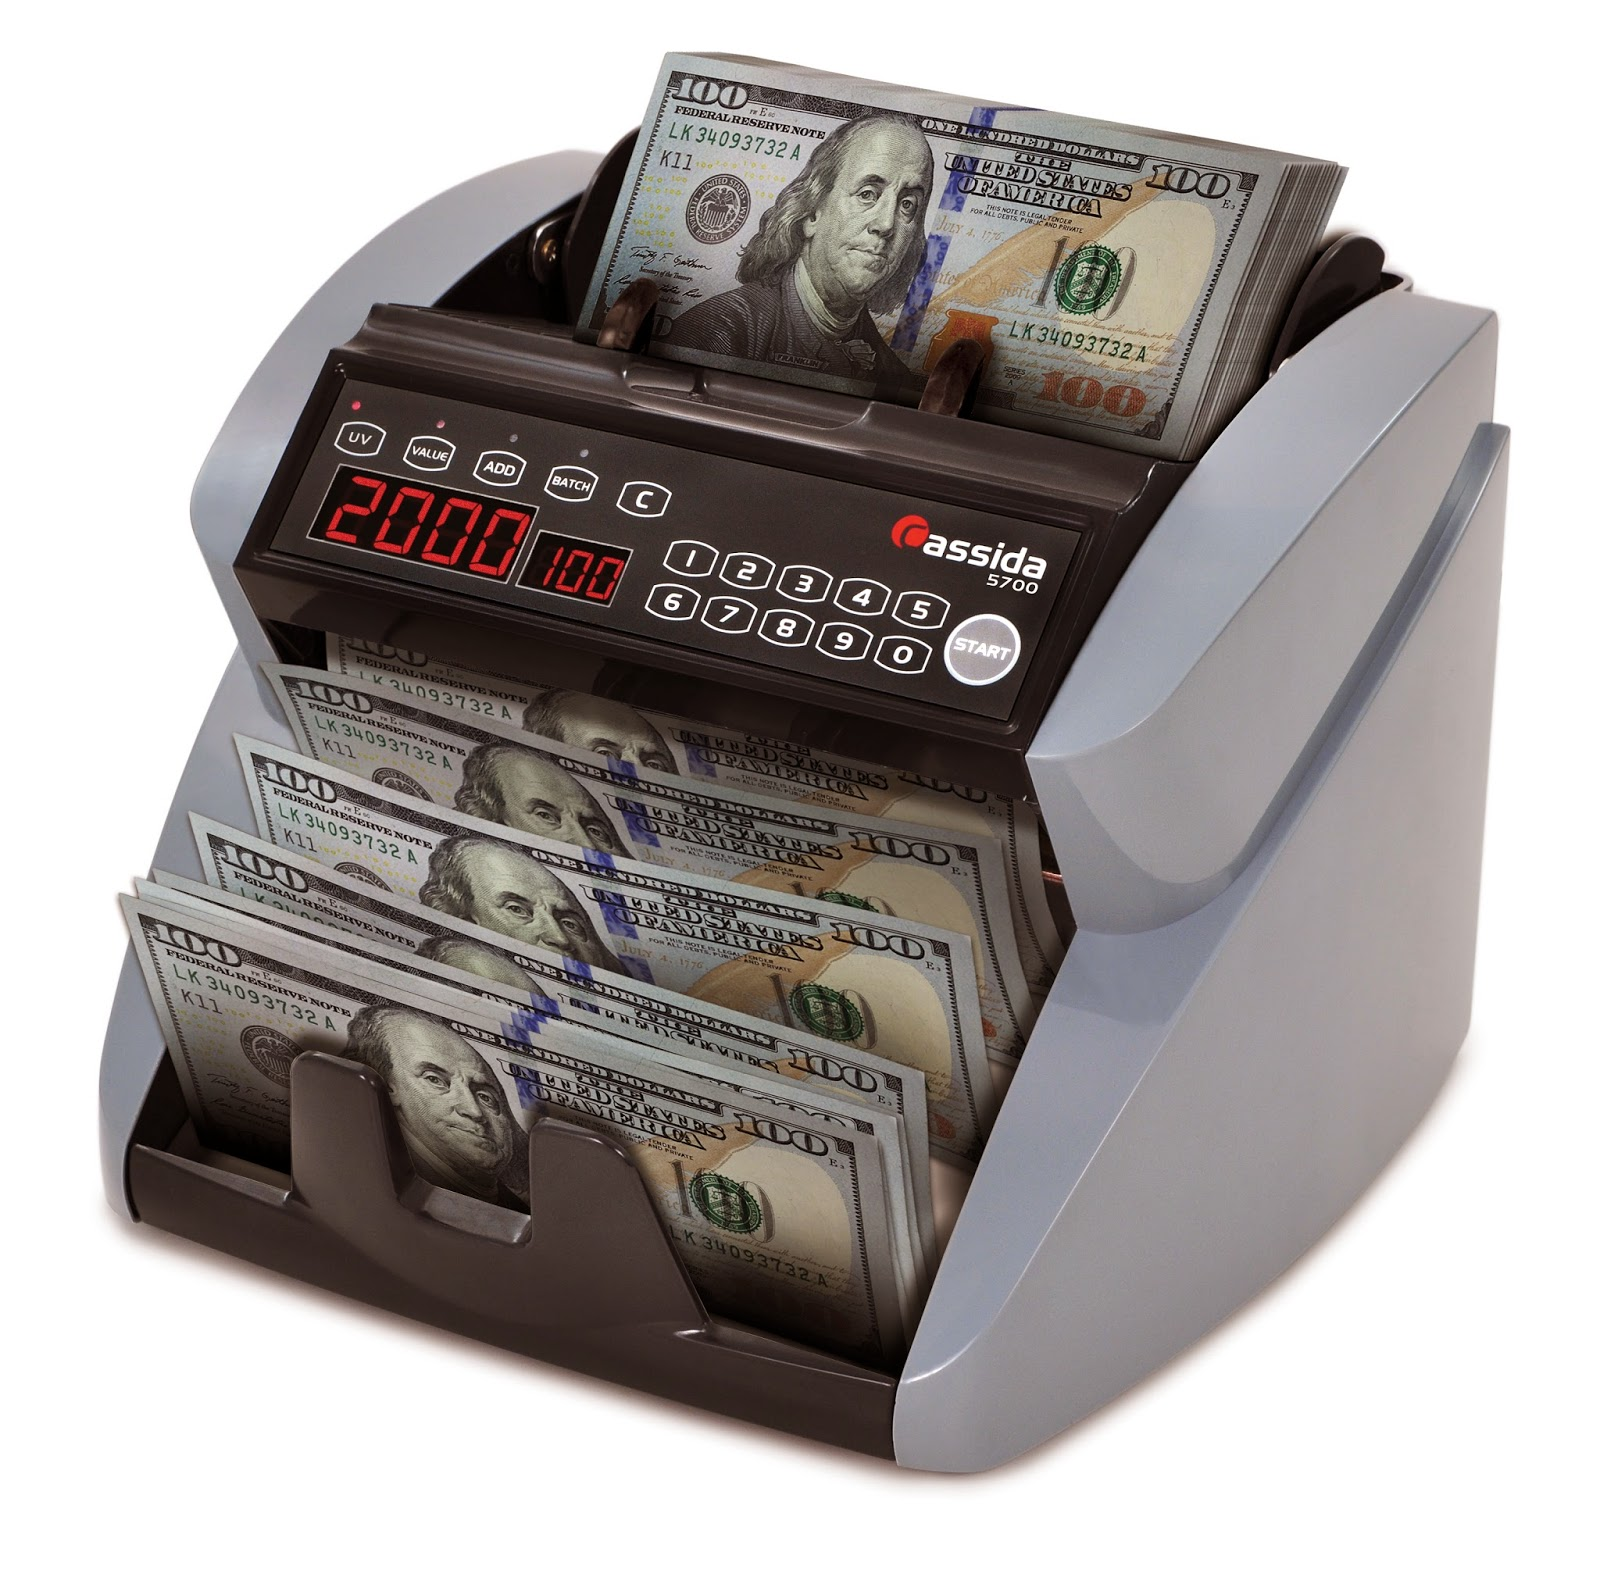 Cash Master Coin Counter Zero Bitconnect Coin What Is It